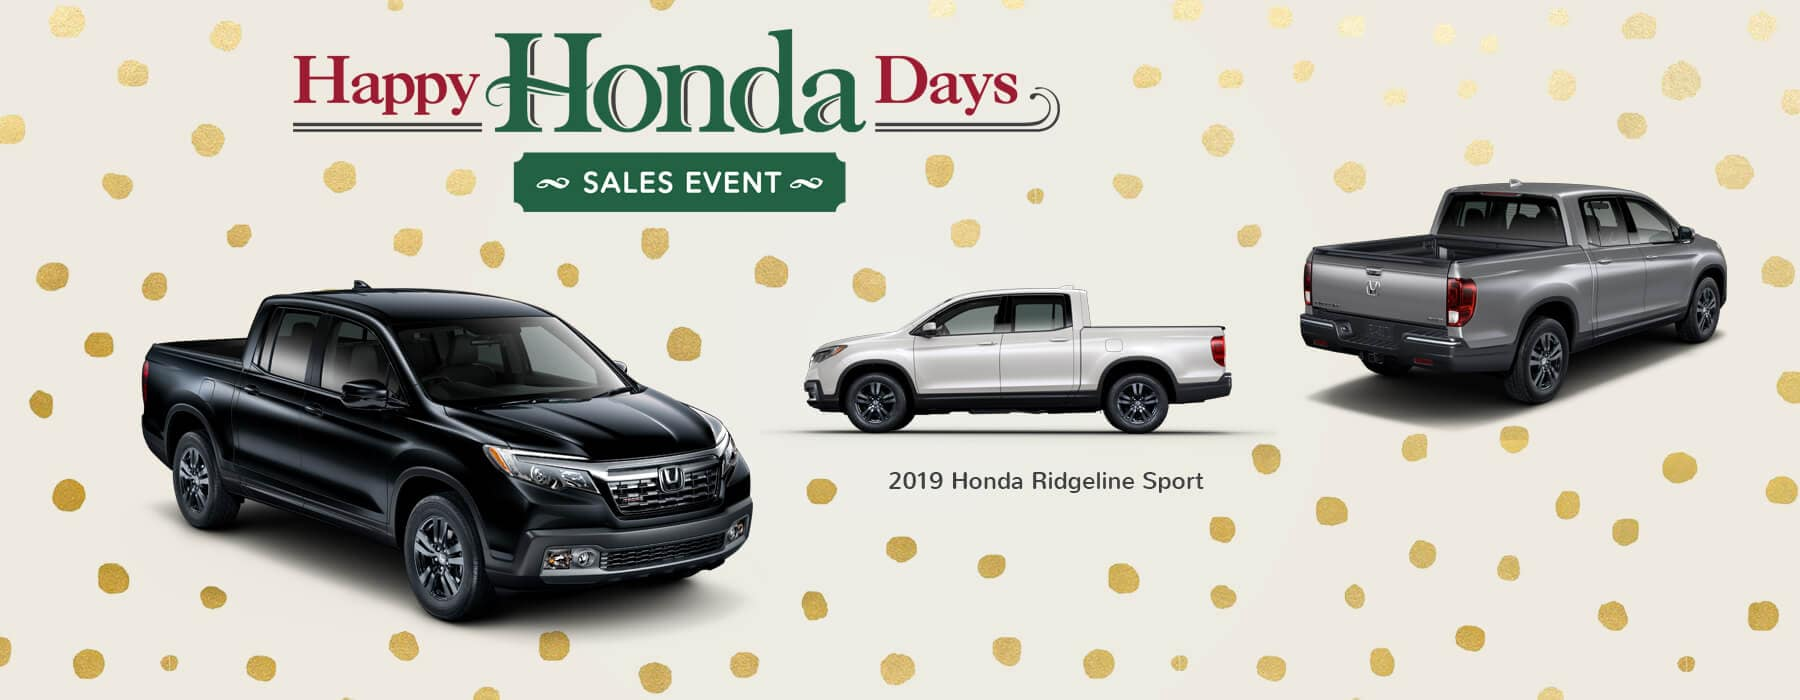 Happy Honda Days Sales Event 2019 Honda Ridgeline Slider